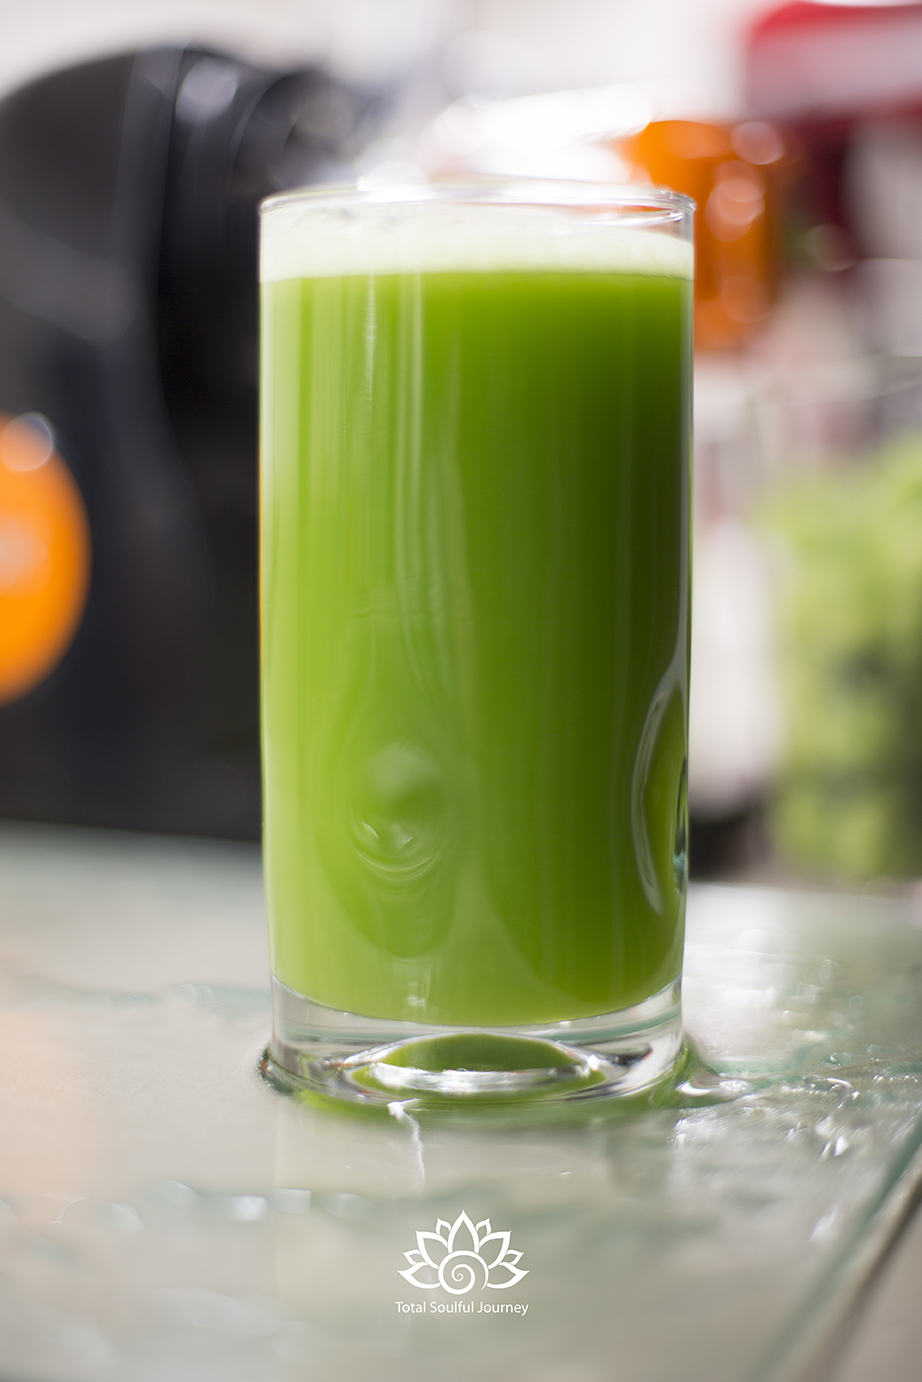 Does Celery Juice Work? - A One Month Review — Total Soulful